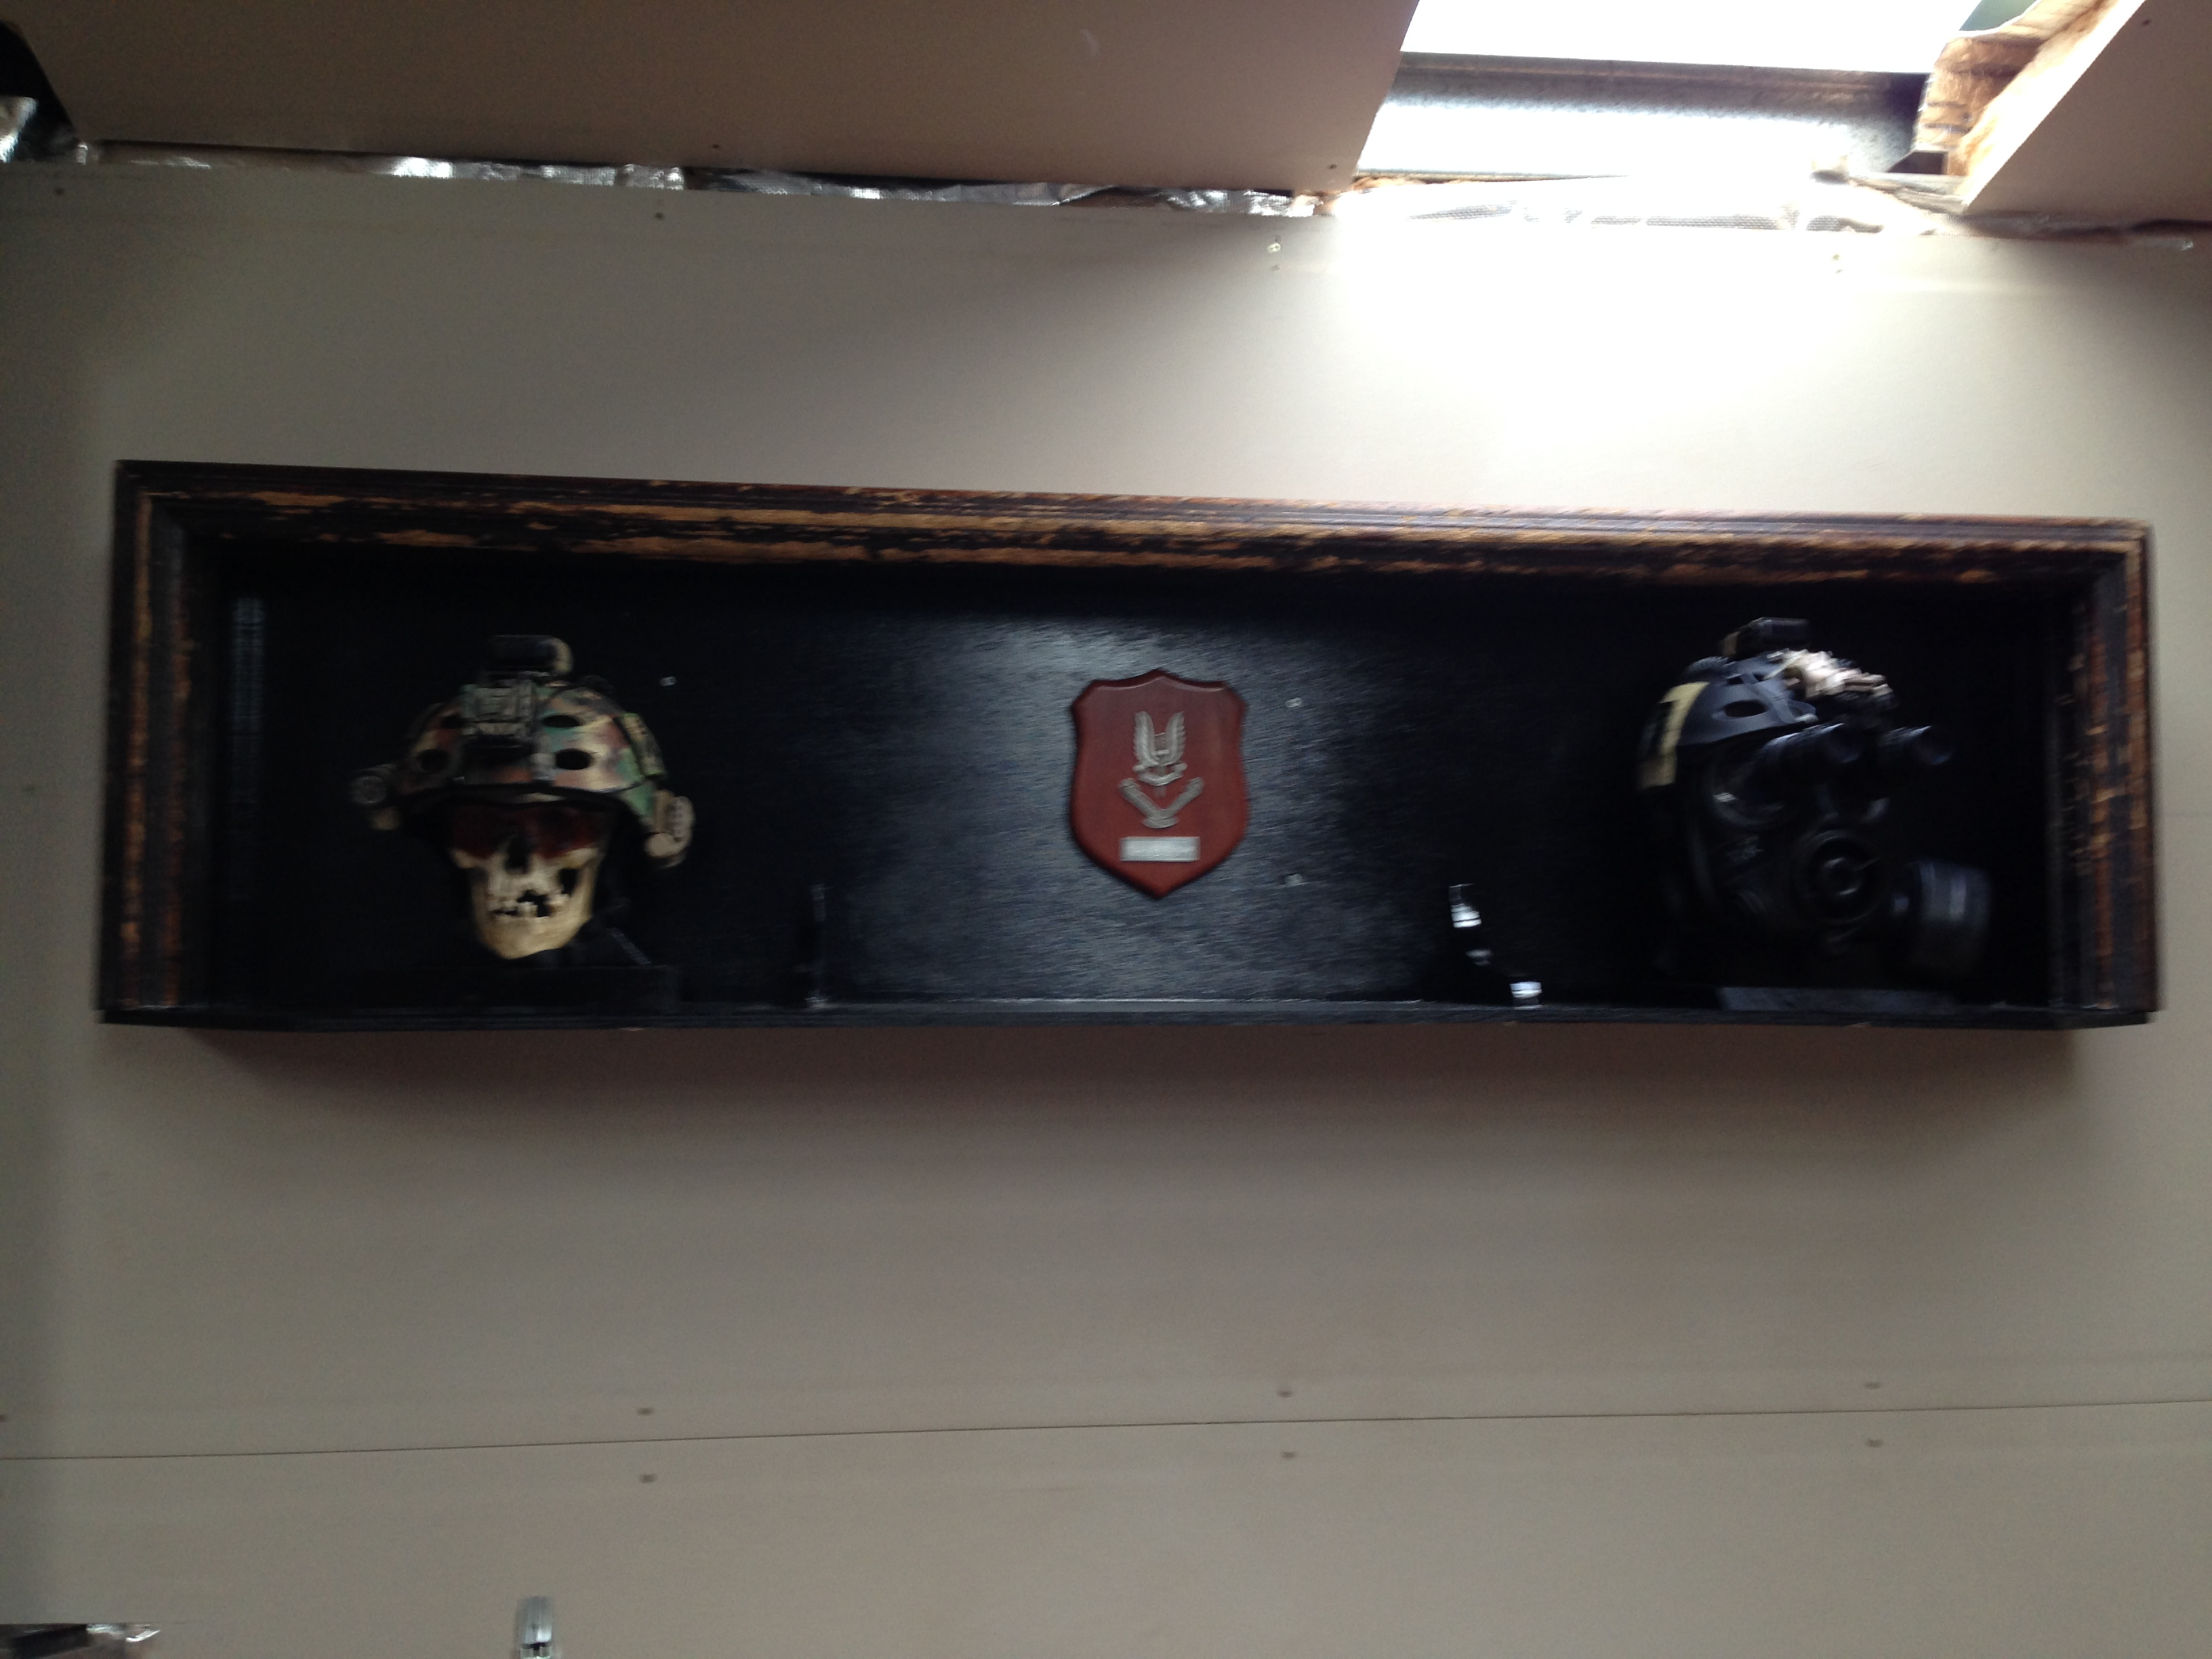 Helmet mounted display army patches